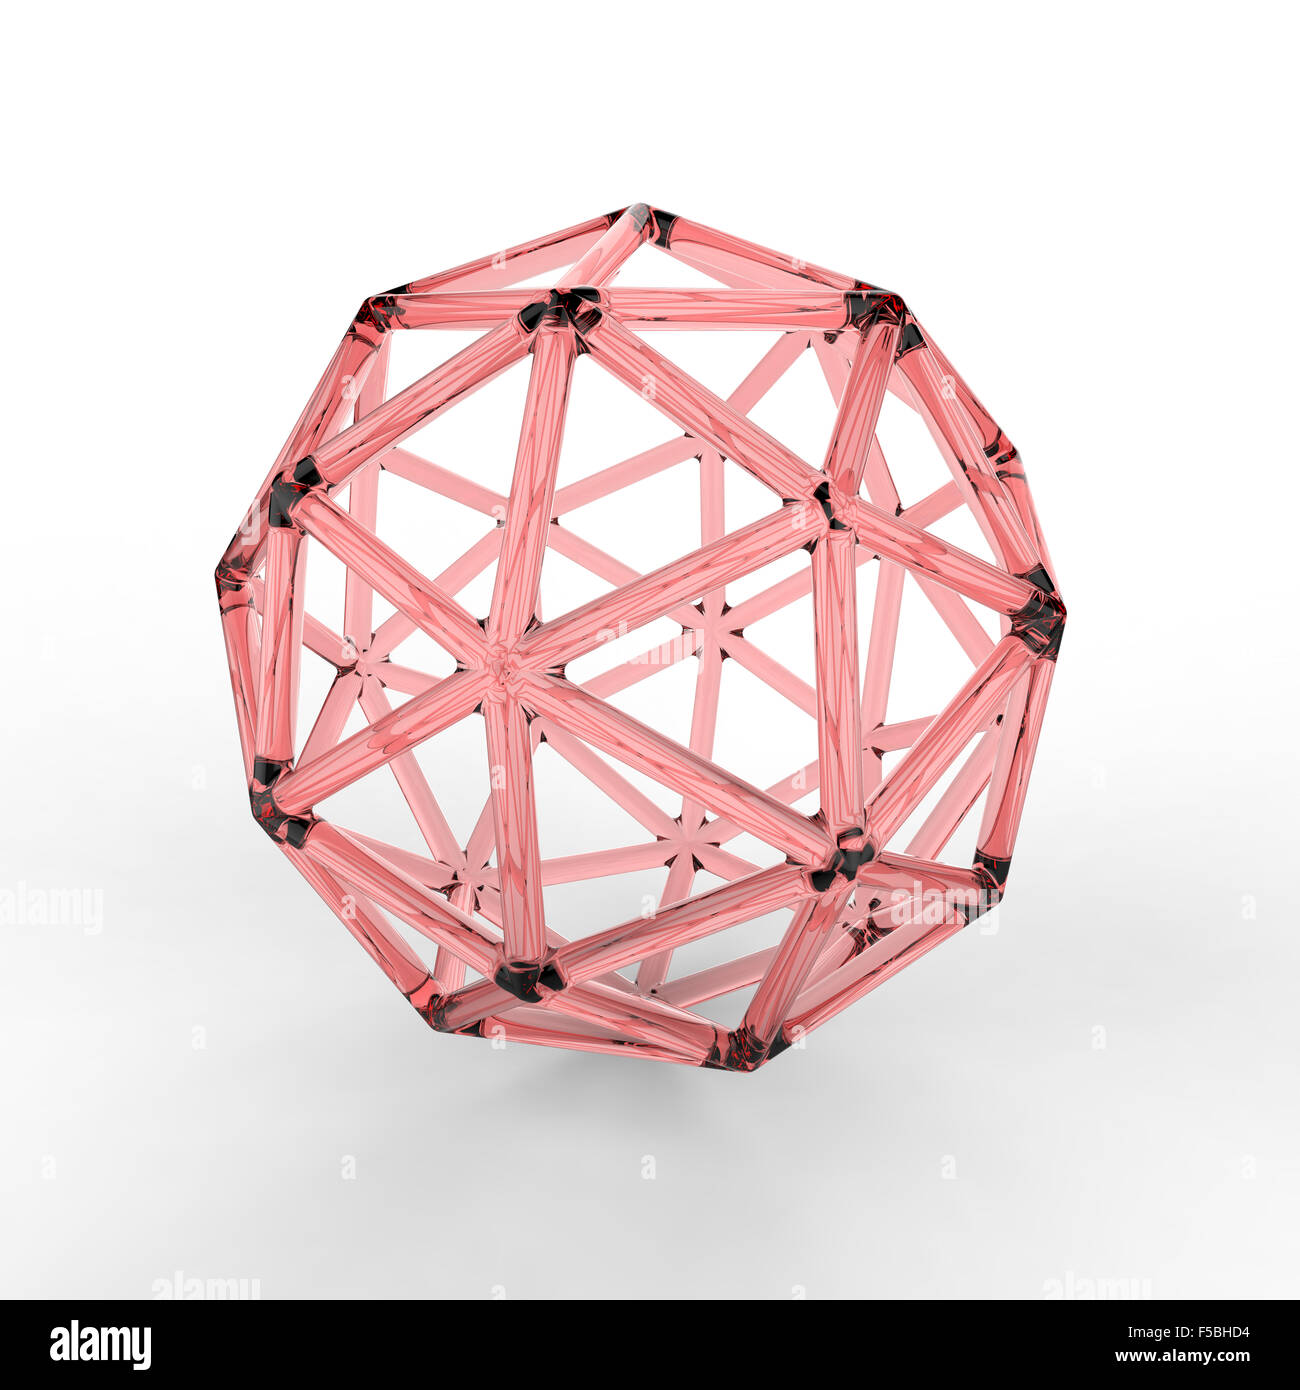 3d red plastic glass pentakis dodecahedron with transparent frame on white background - Stock Image